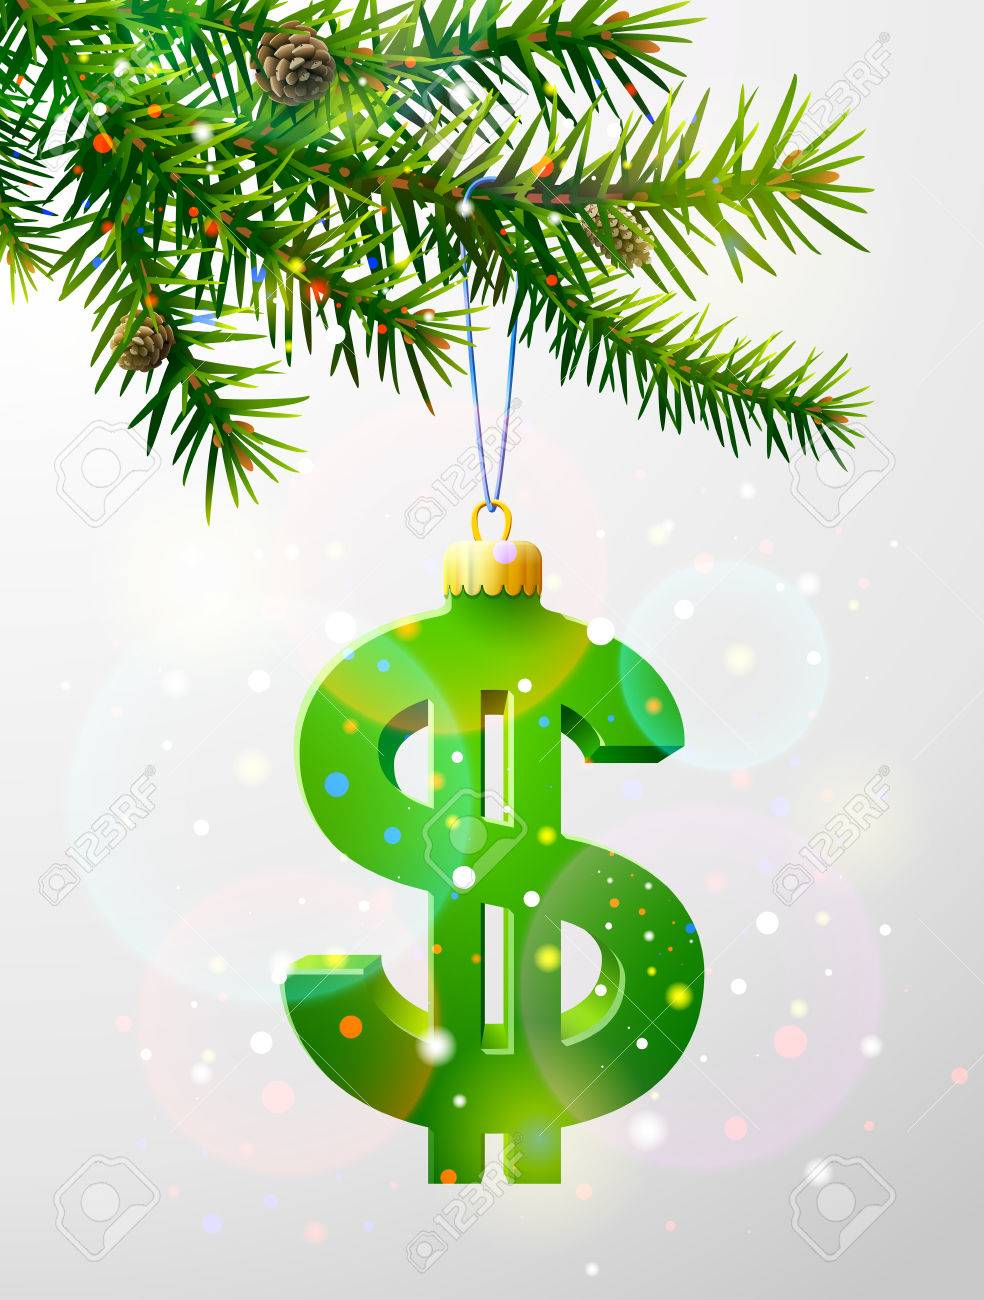 Christmas Tree Branch With Decorative Dollar Symbol. Dollar Sign ...